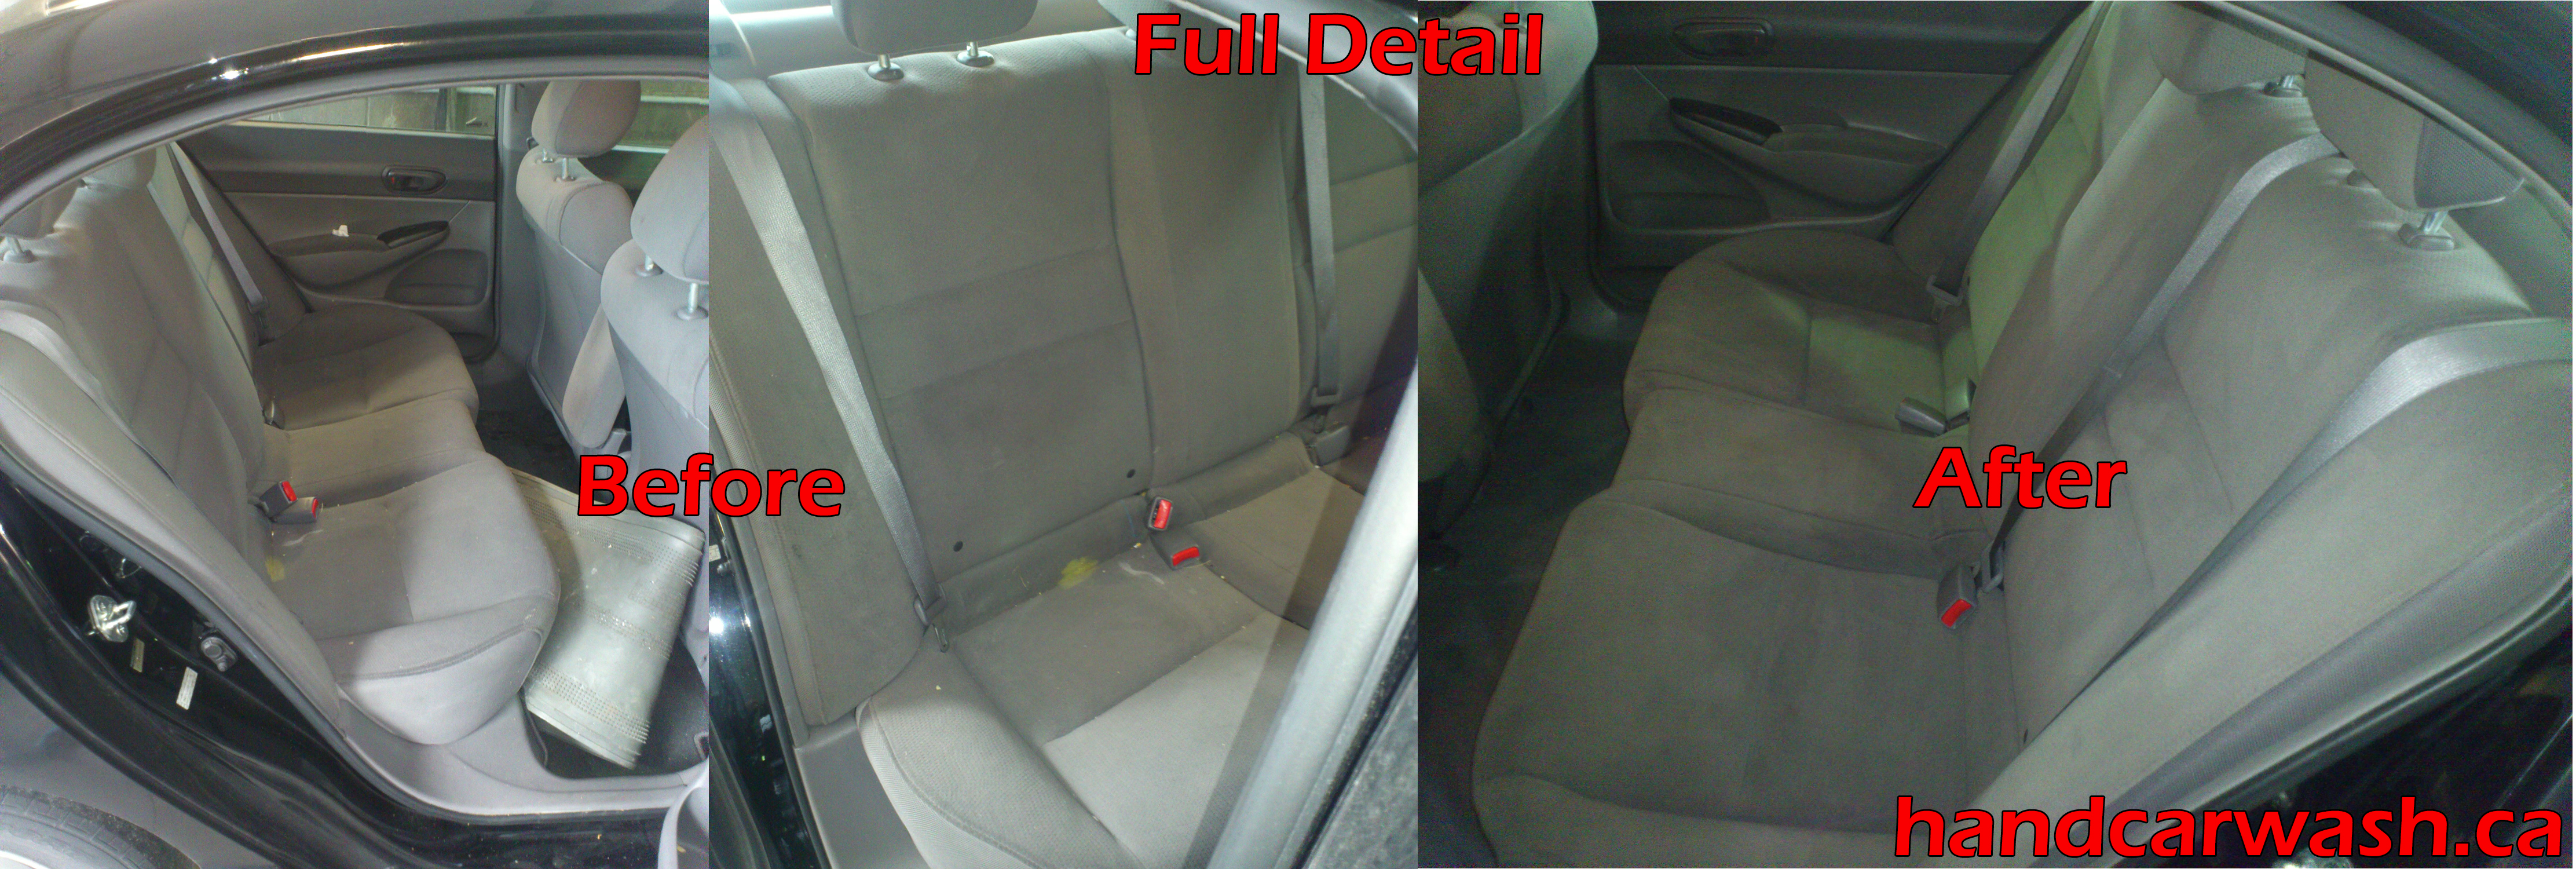 civic-before-after-2013-2